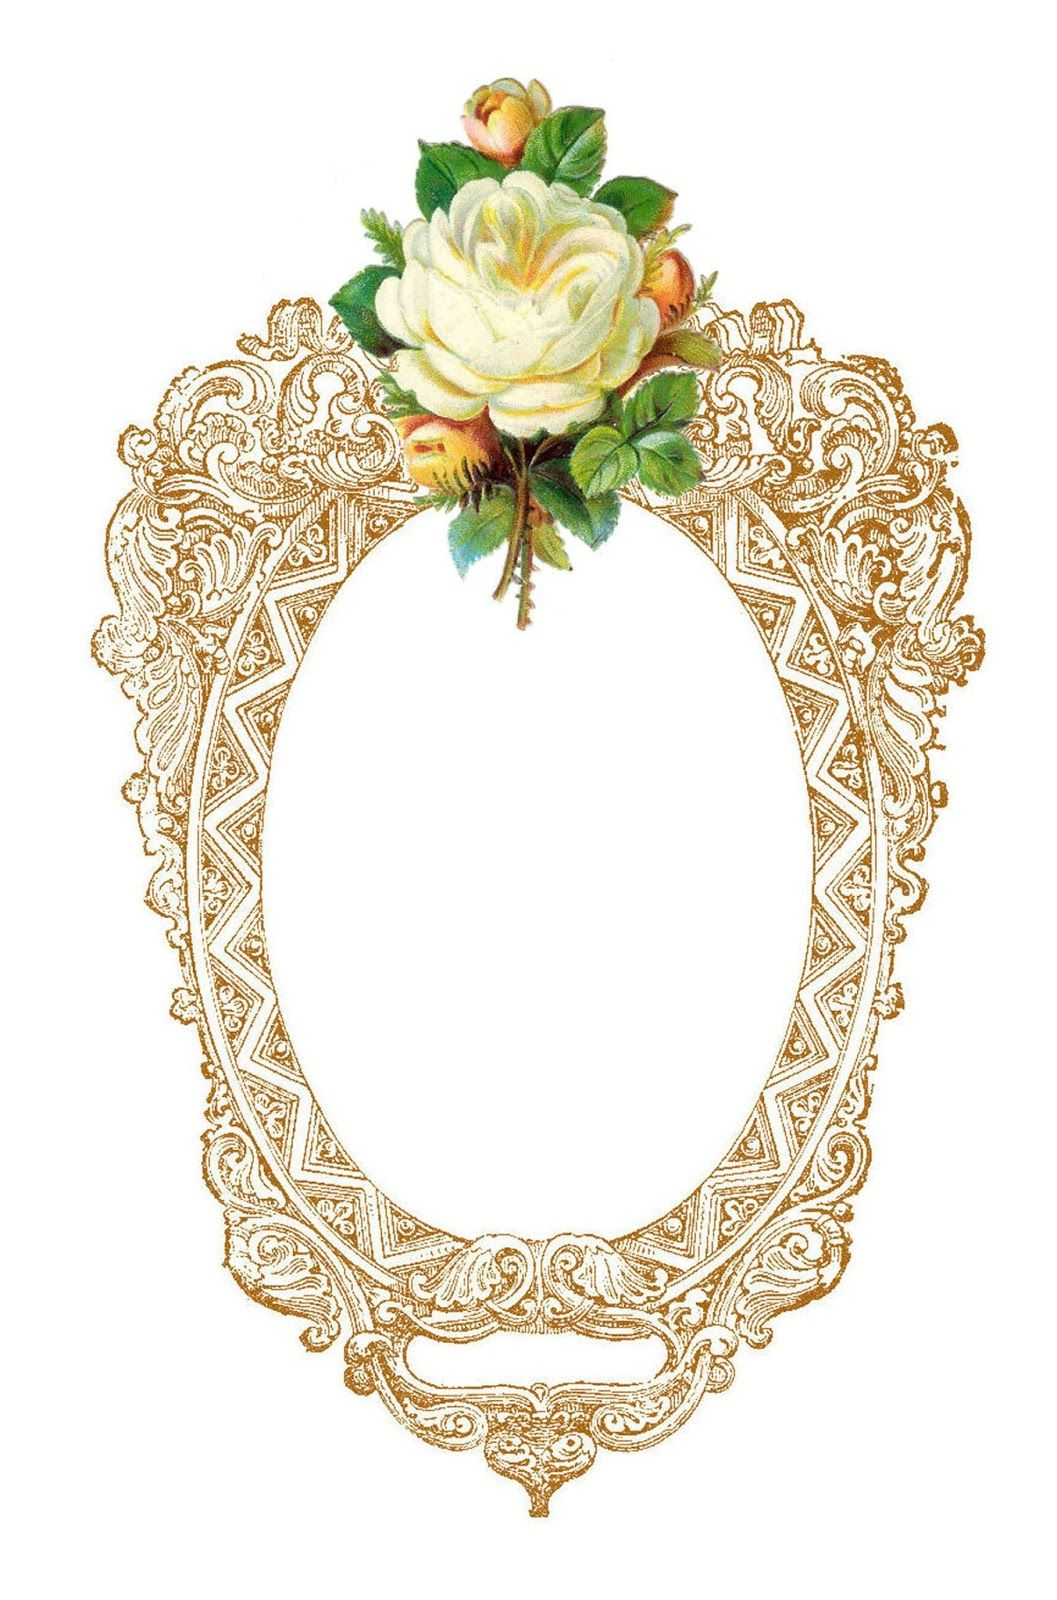 Antique frames drawing